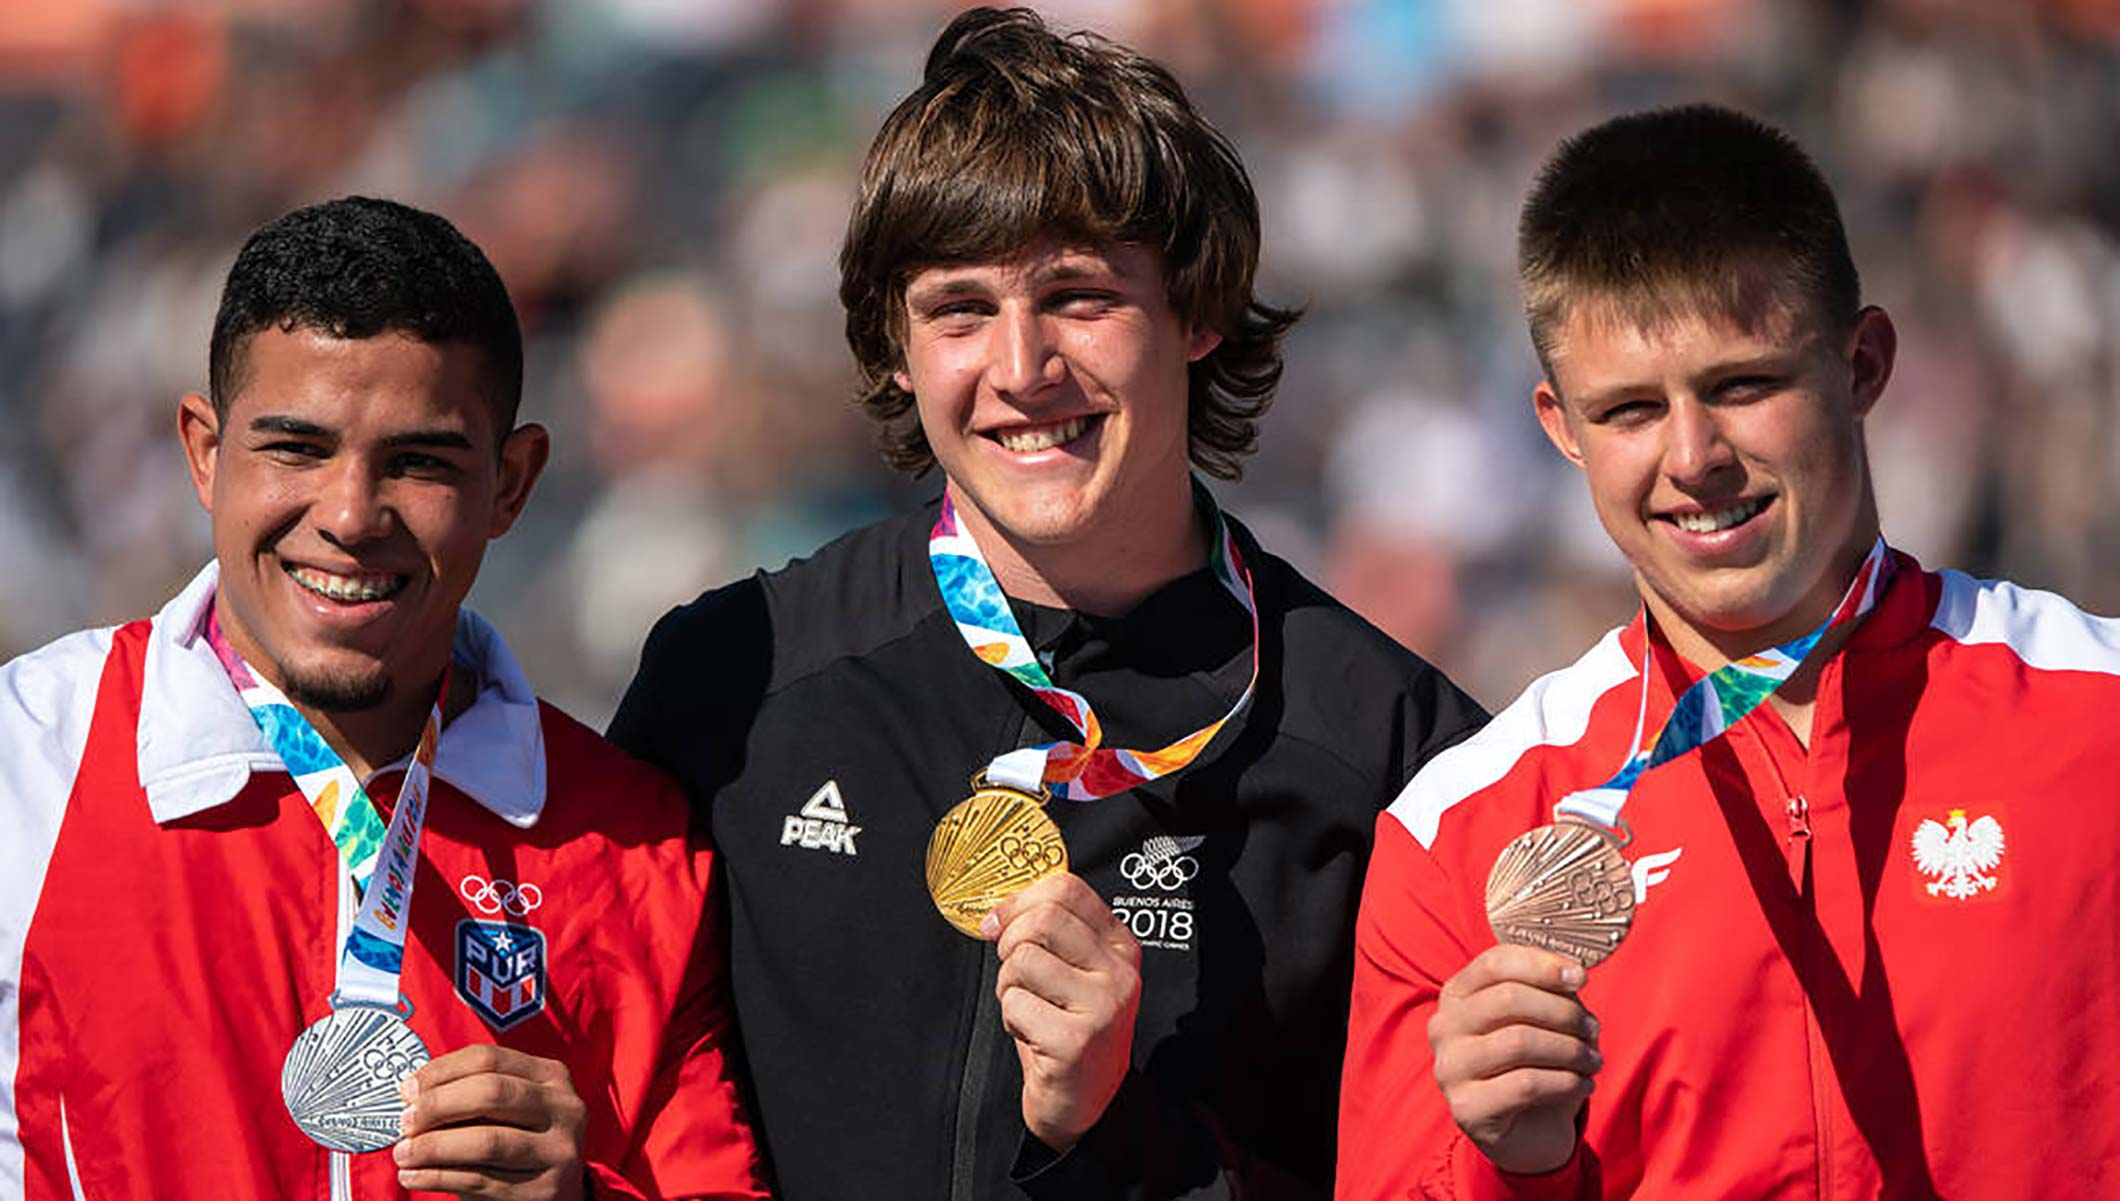 Men's discus gold medallist Connor Bell (NZL), pictured centre, managed to avoid a head-shave (Thomas Lovelock for OIS/IOC)